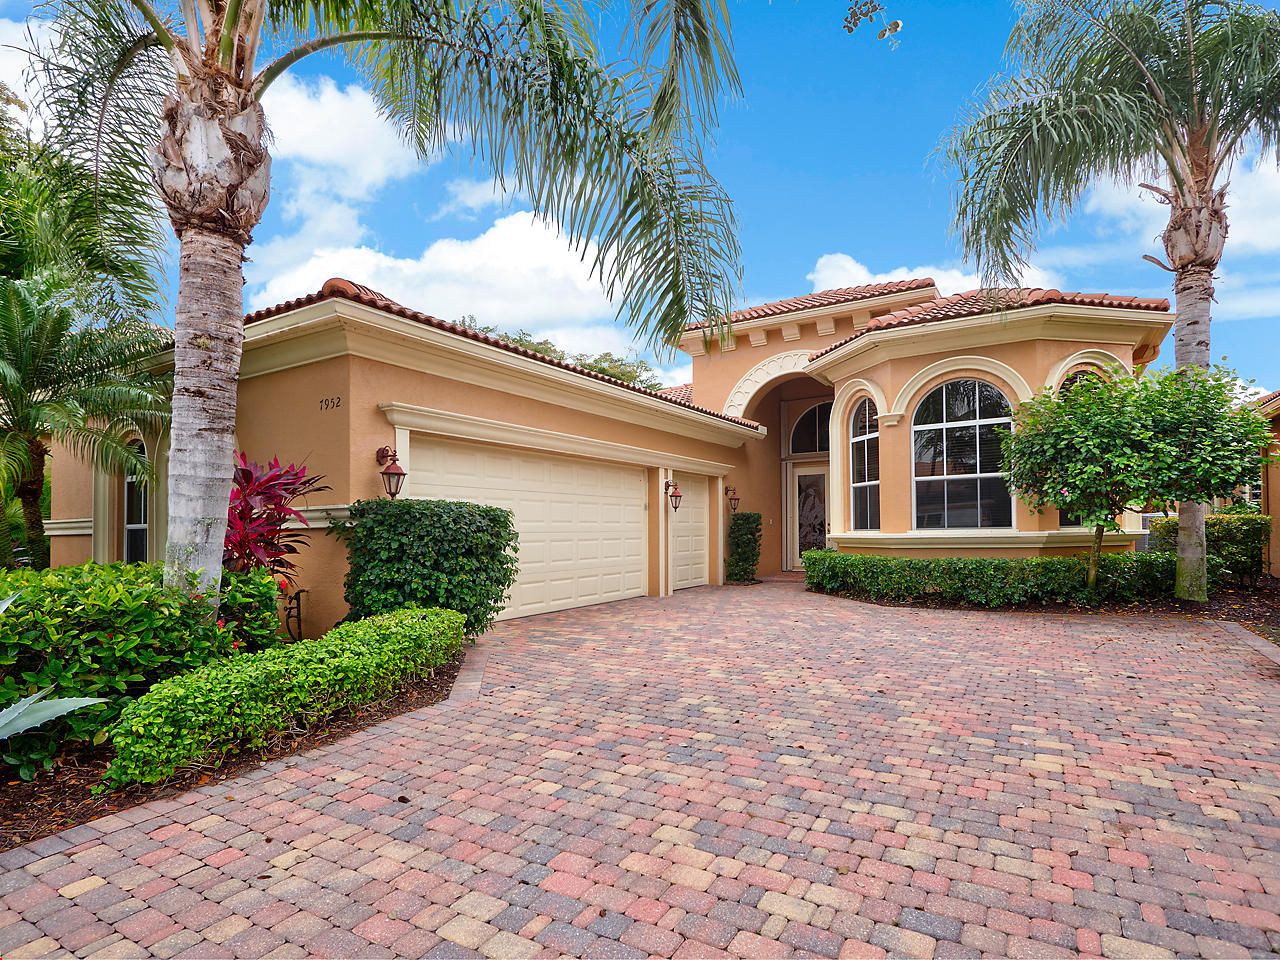 Home for sale in Ibis Golf & Country Club / Villagio West Palm Beach Florida